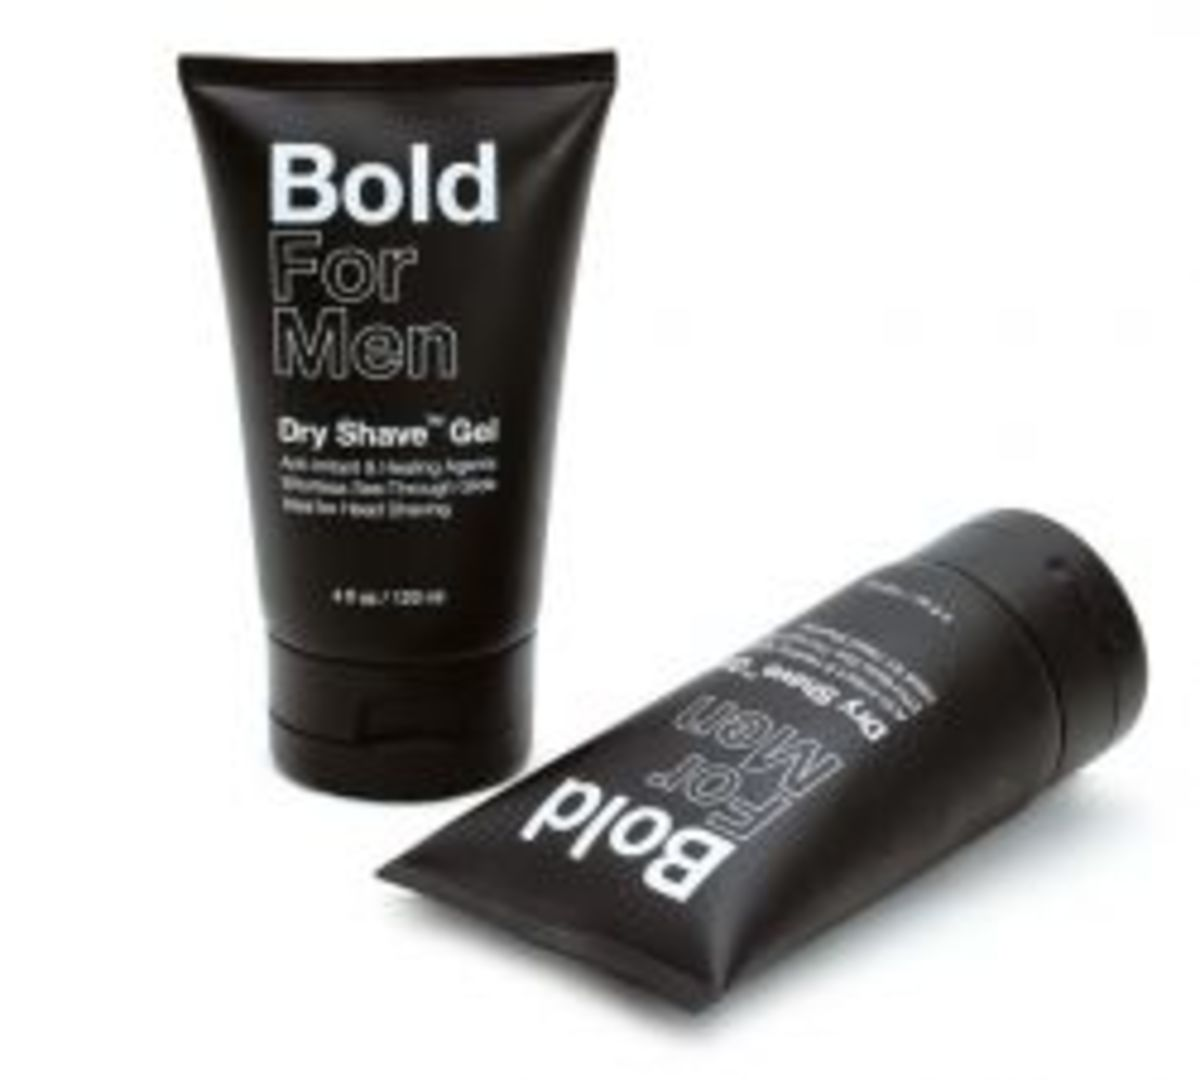 Bold for Men Dry Shave Gel